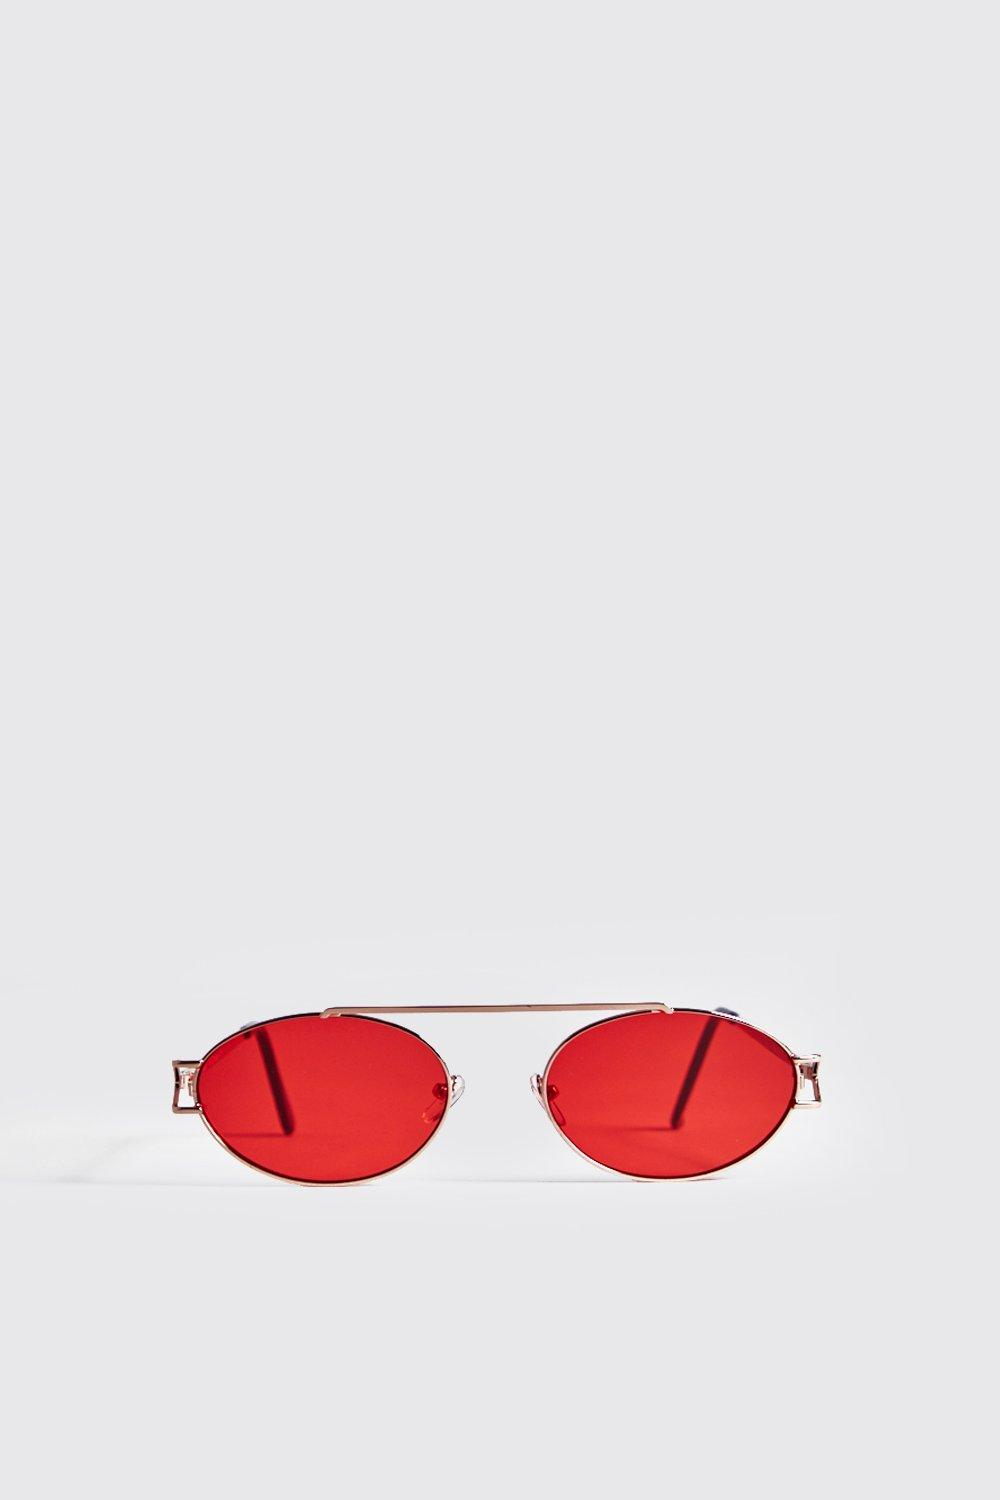 2df453b3a0c Red Lens Round Metal Frame Sunglasses. Hover to zoom